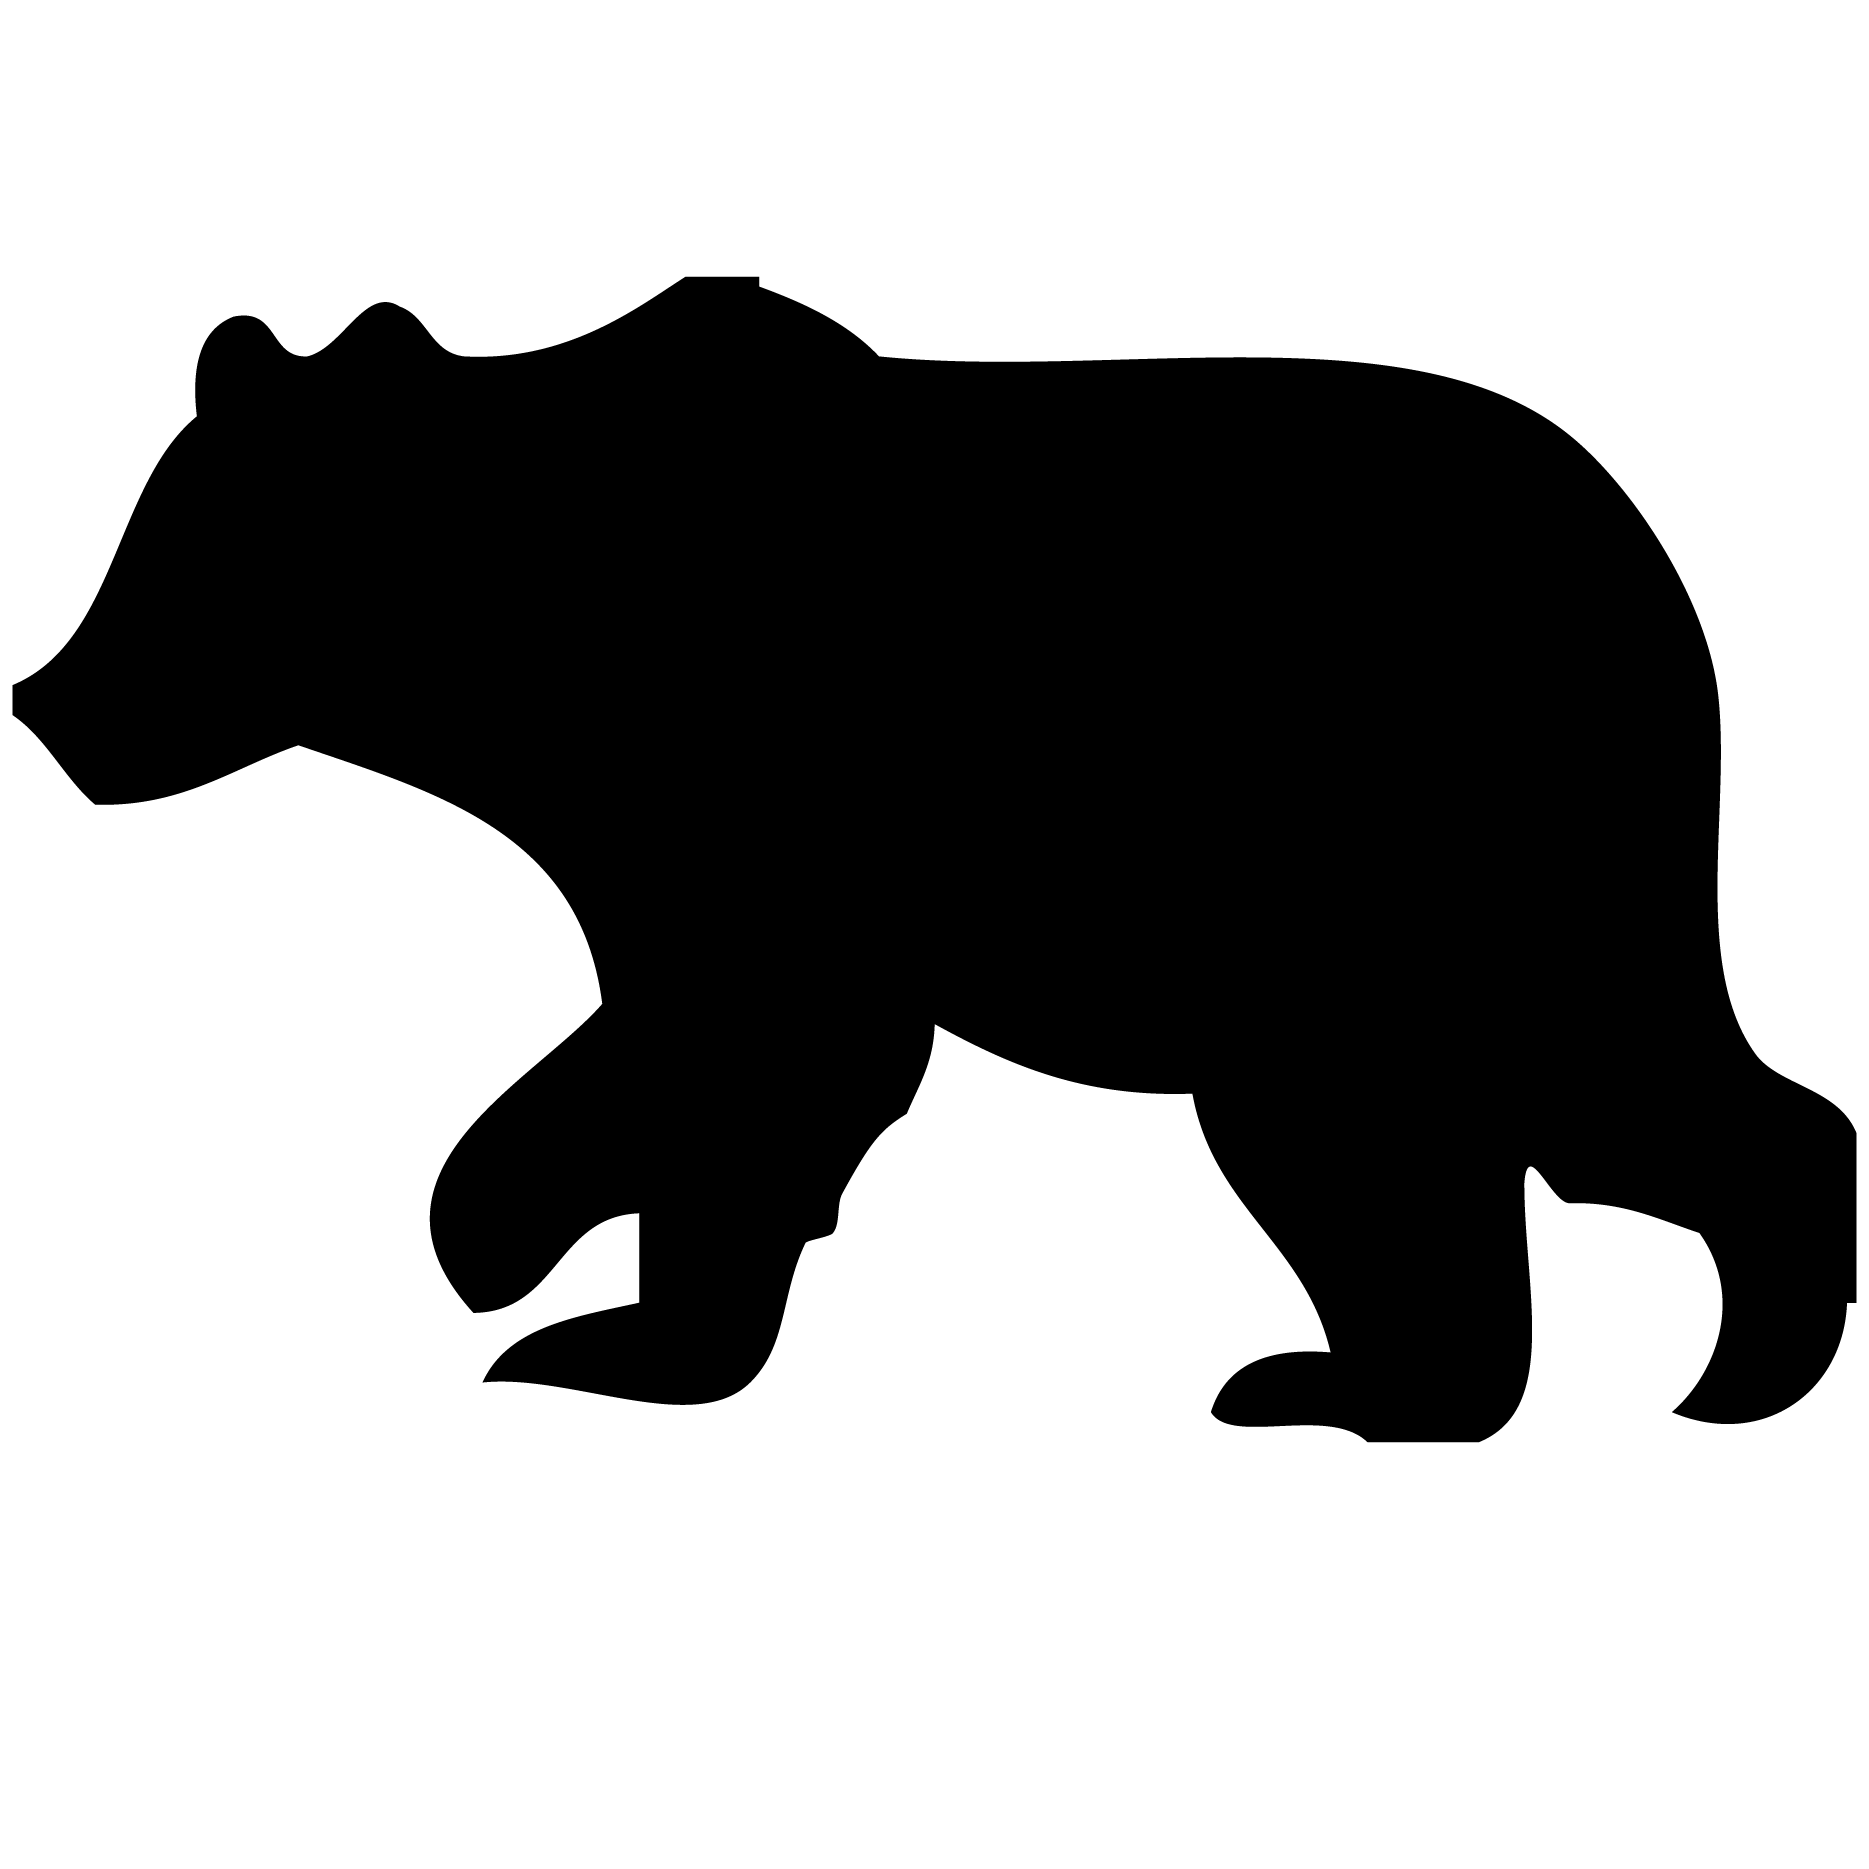 Transparent cali grizzly. Bear cub silhouette at